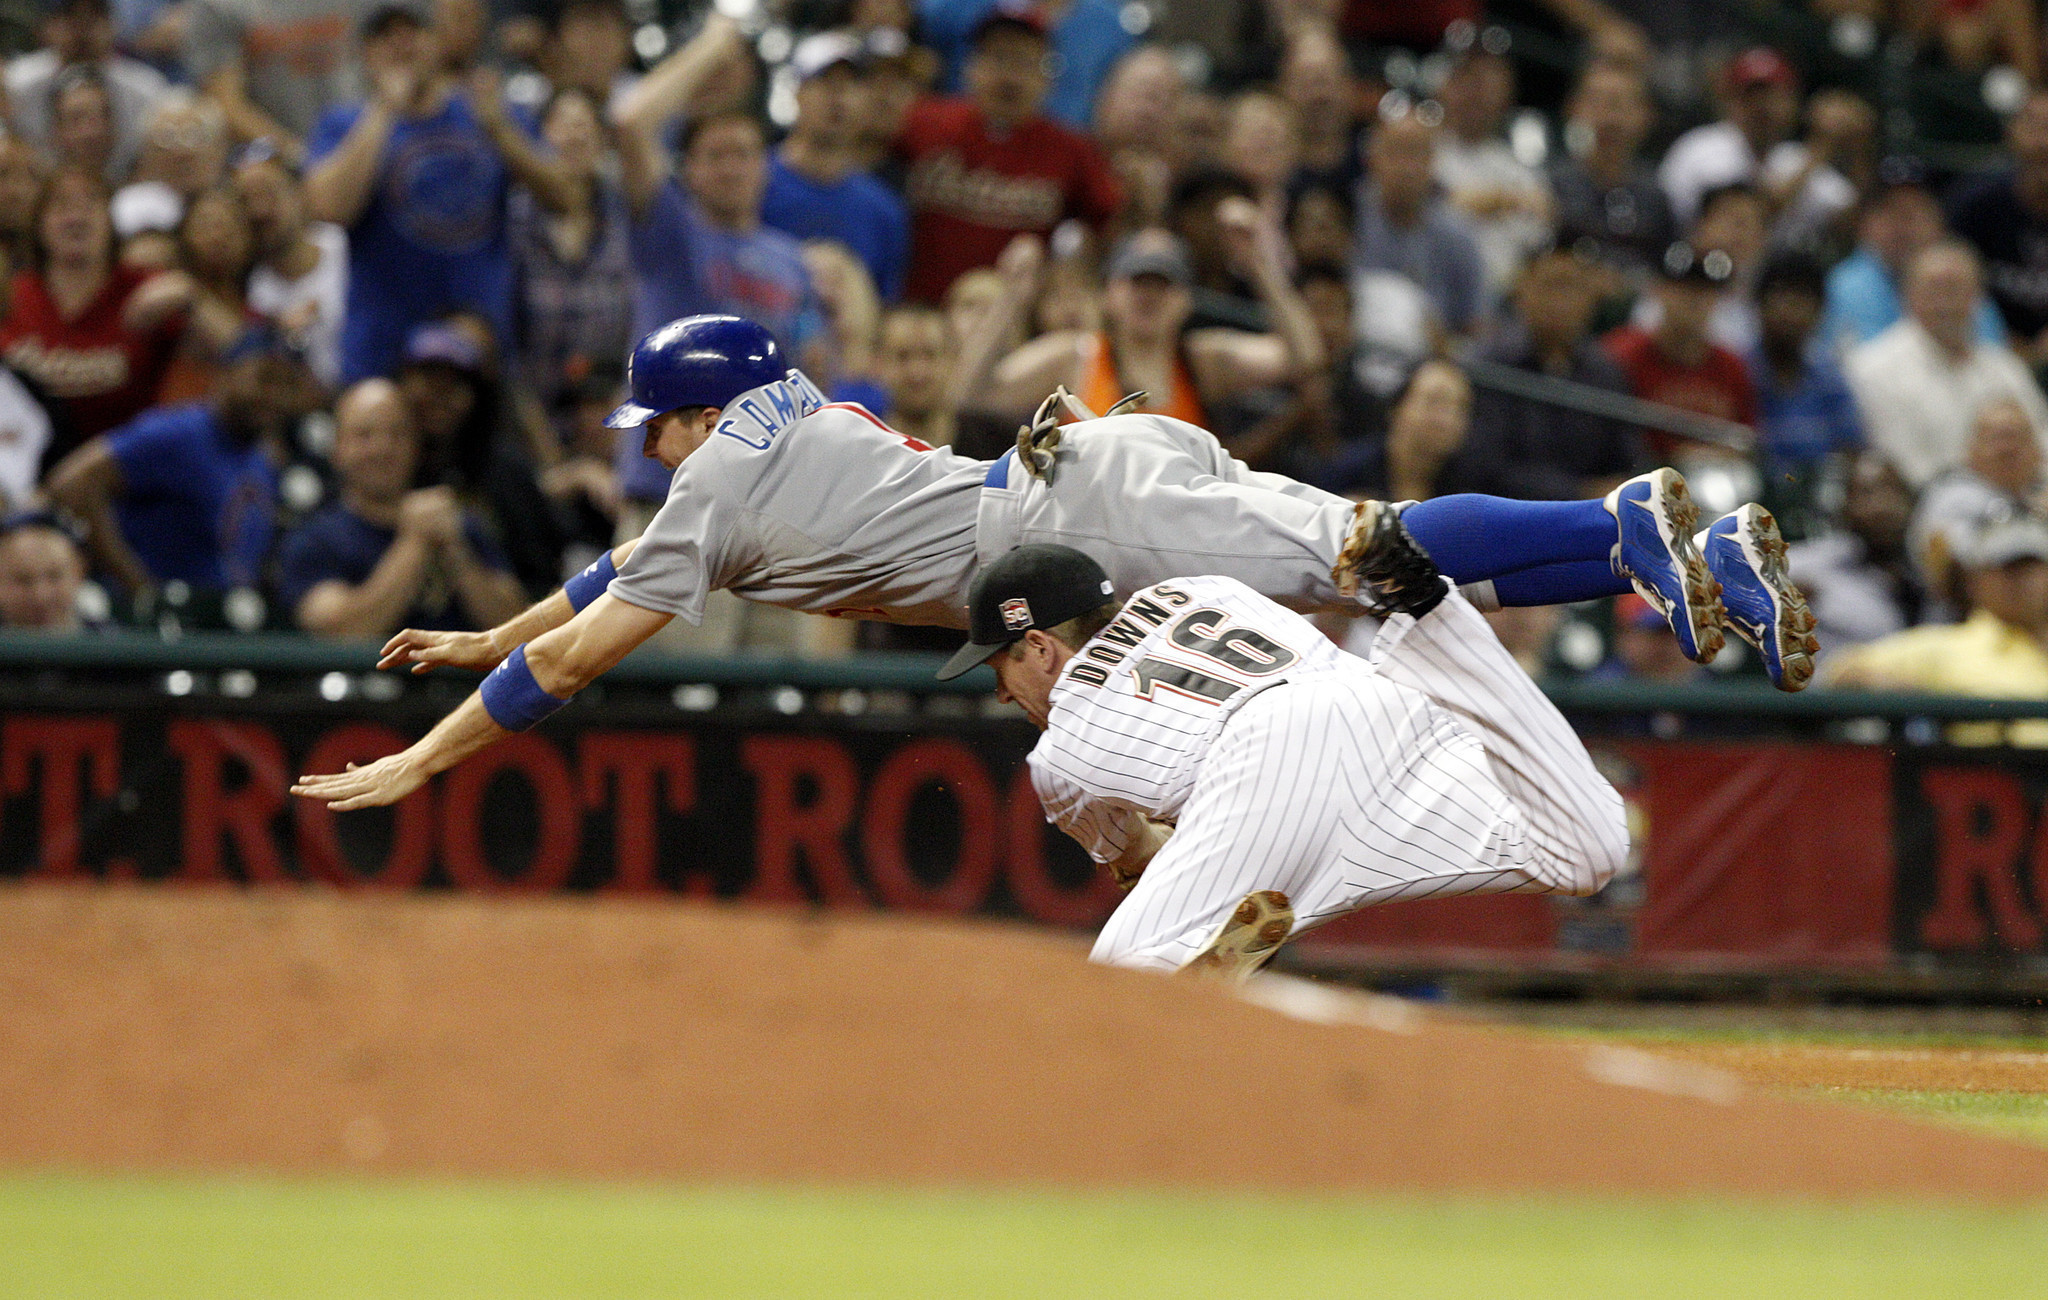 44164c7b2 Cubs offense AWOL again - Chicago Tribune